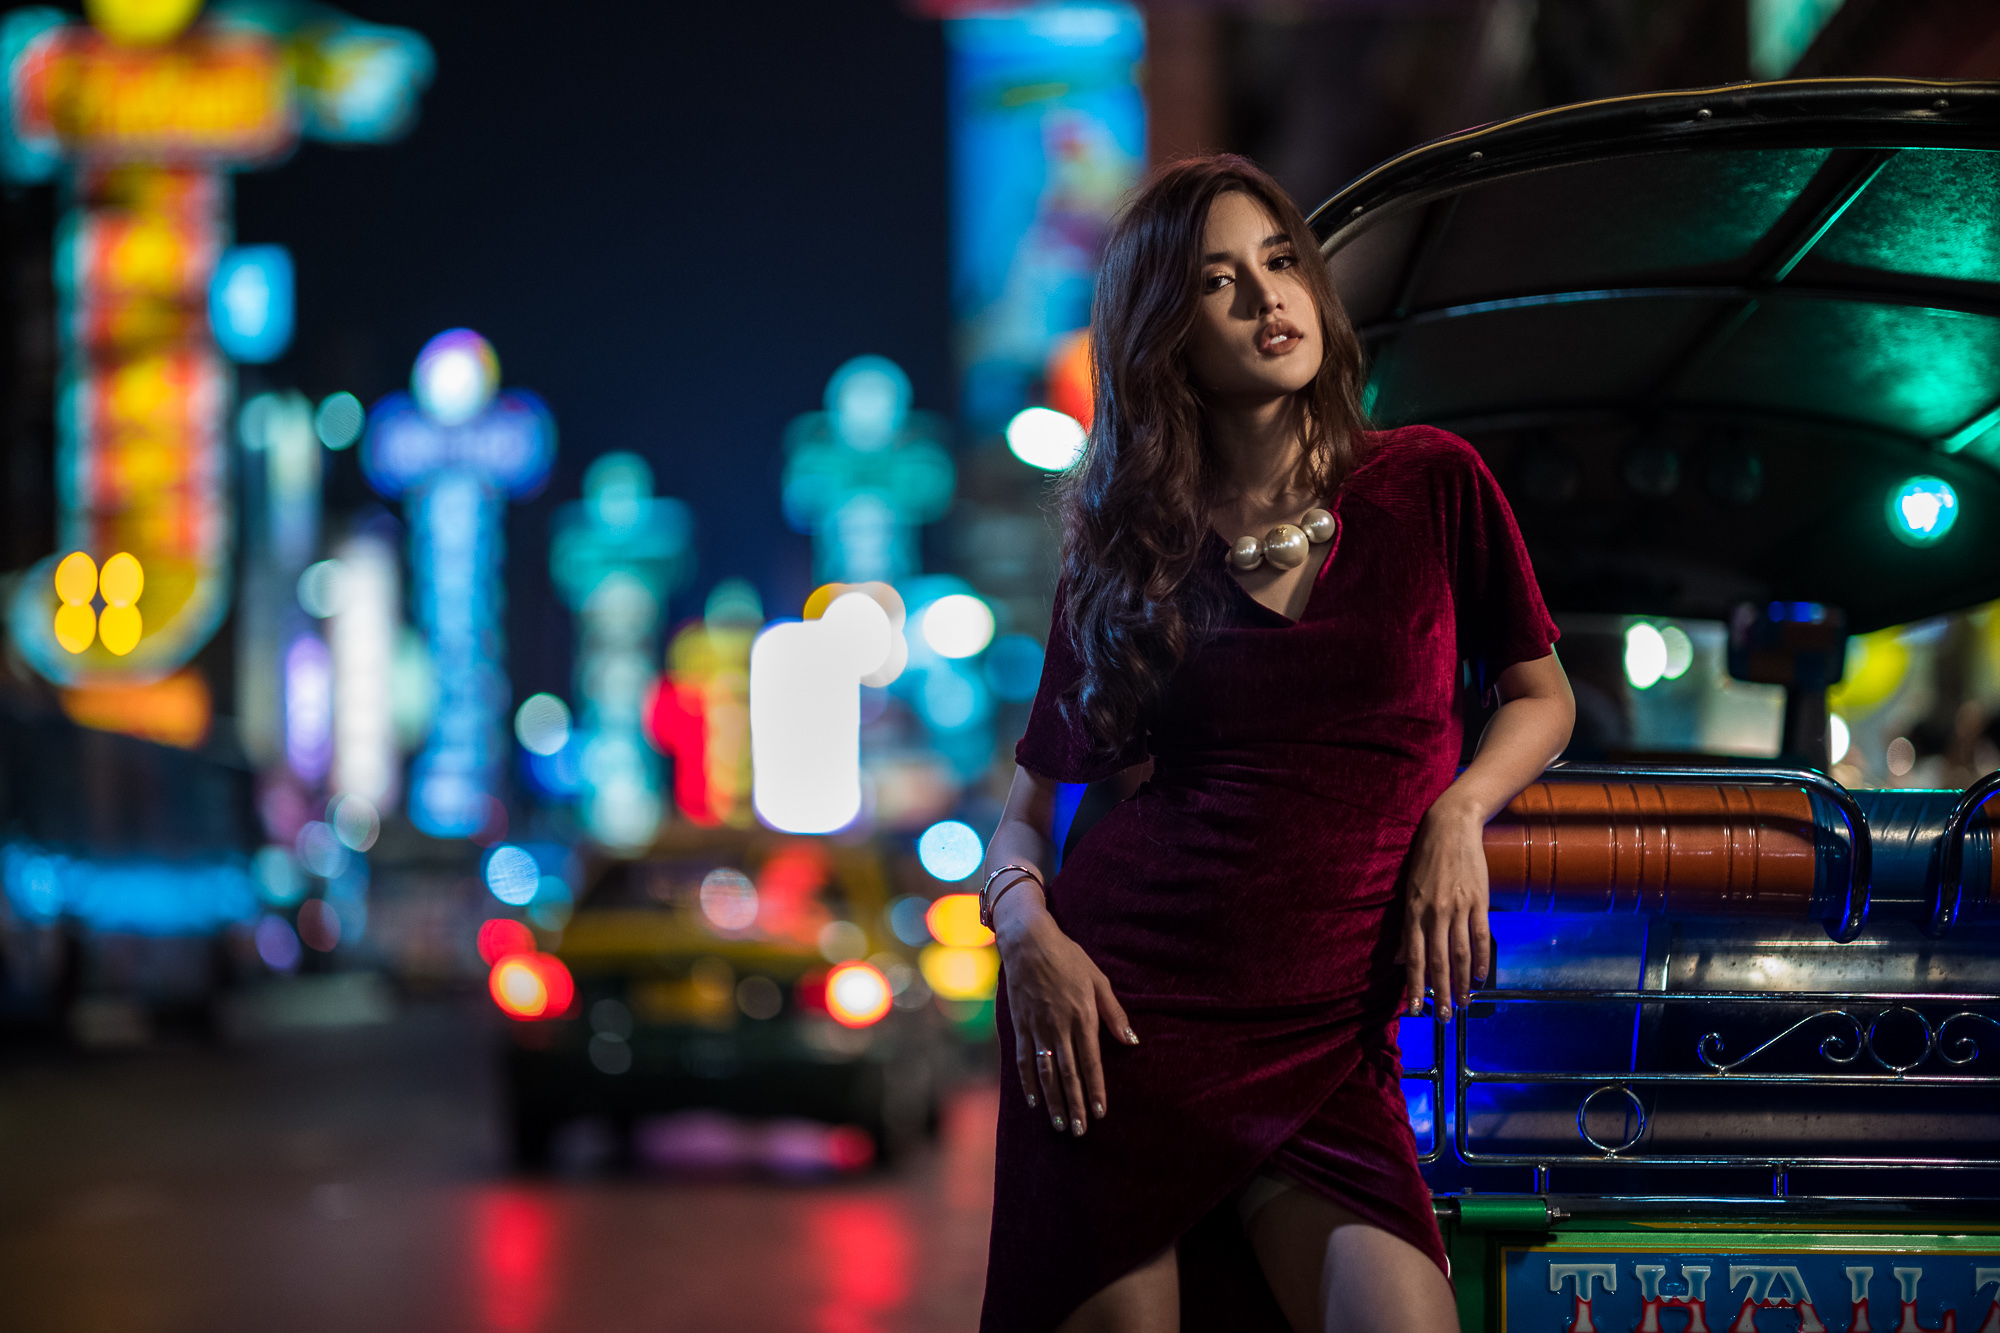 Demonstration picture from Leica Akademie Thailand Noctilux Low Light Workshop in Bangkok, Thailand. Shot at f/2.8 on Leica SL to show more detail in the background.